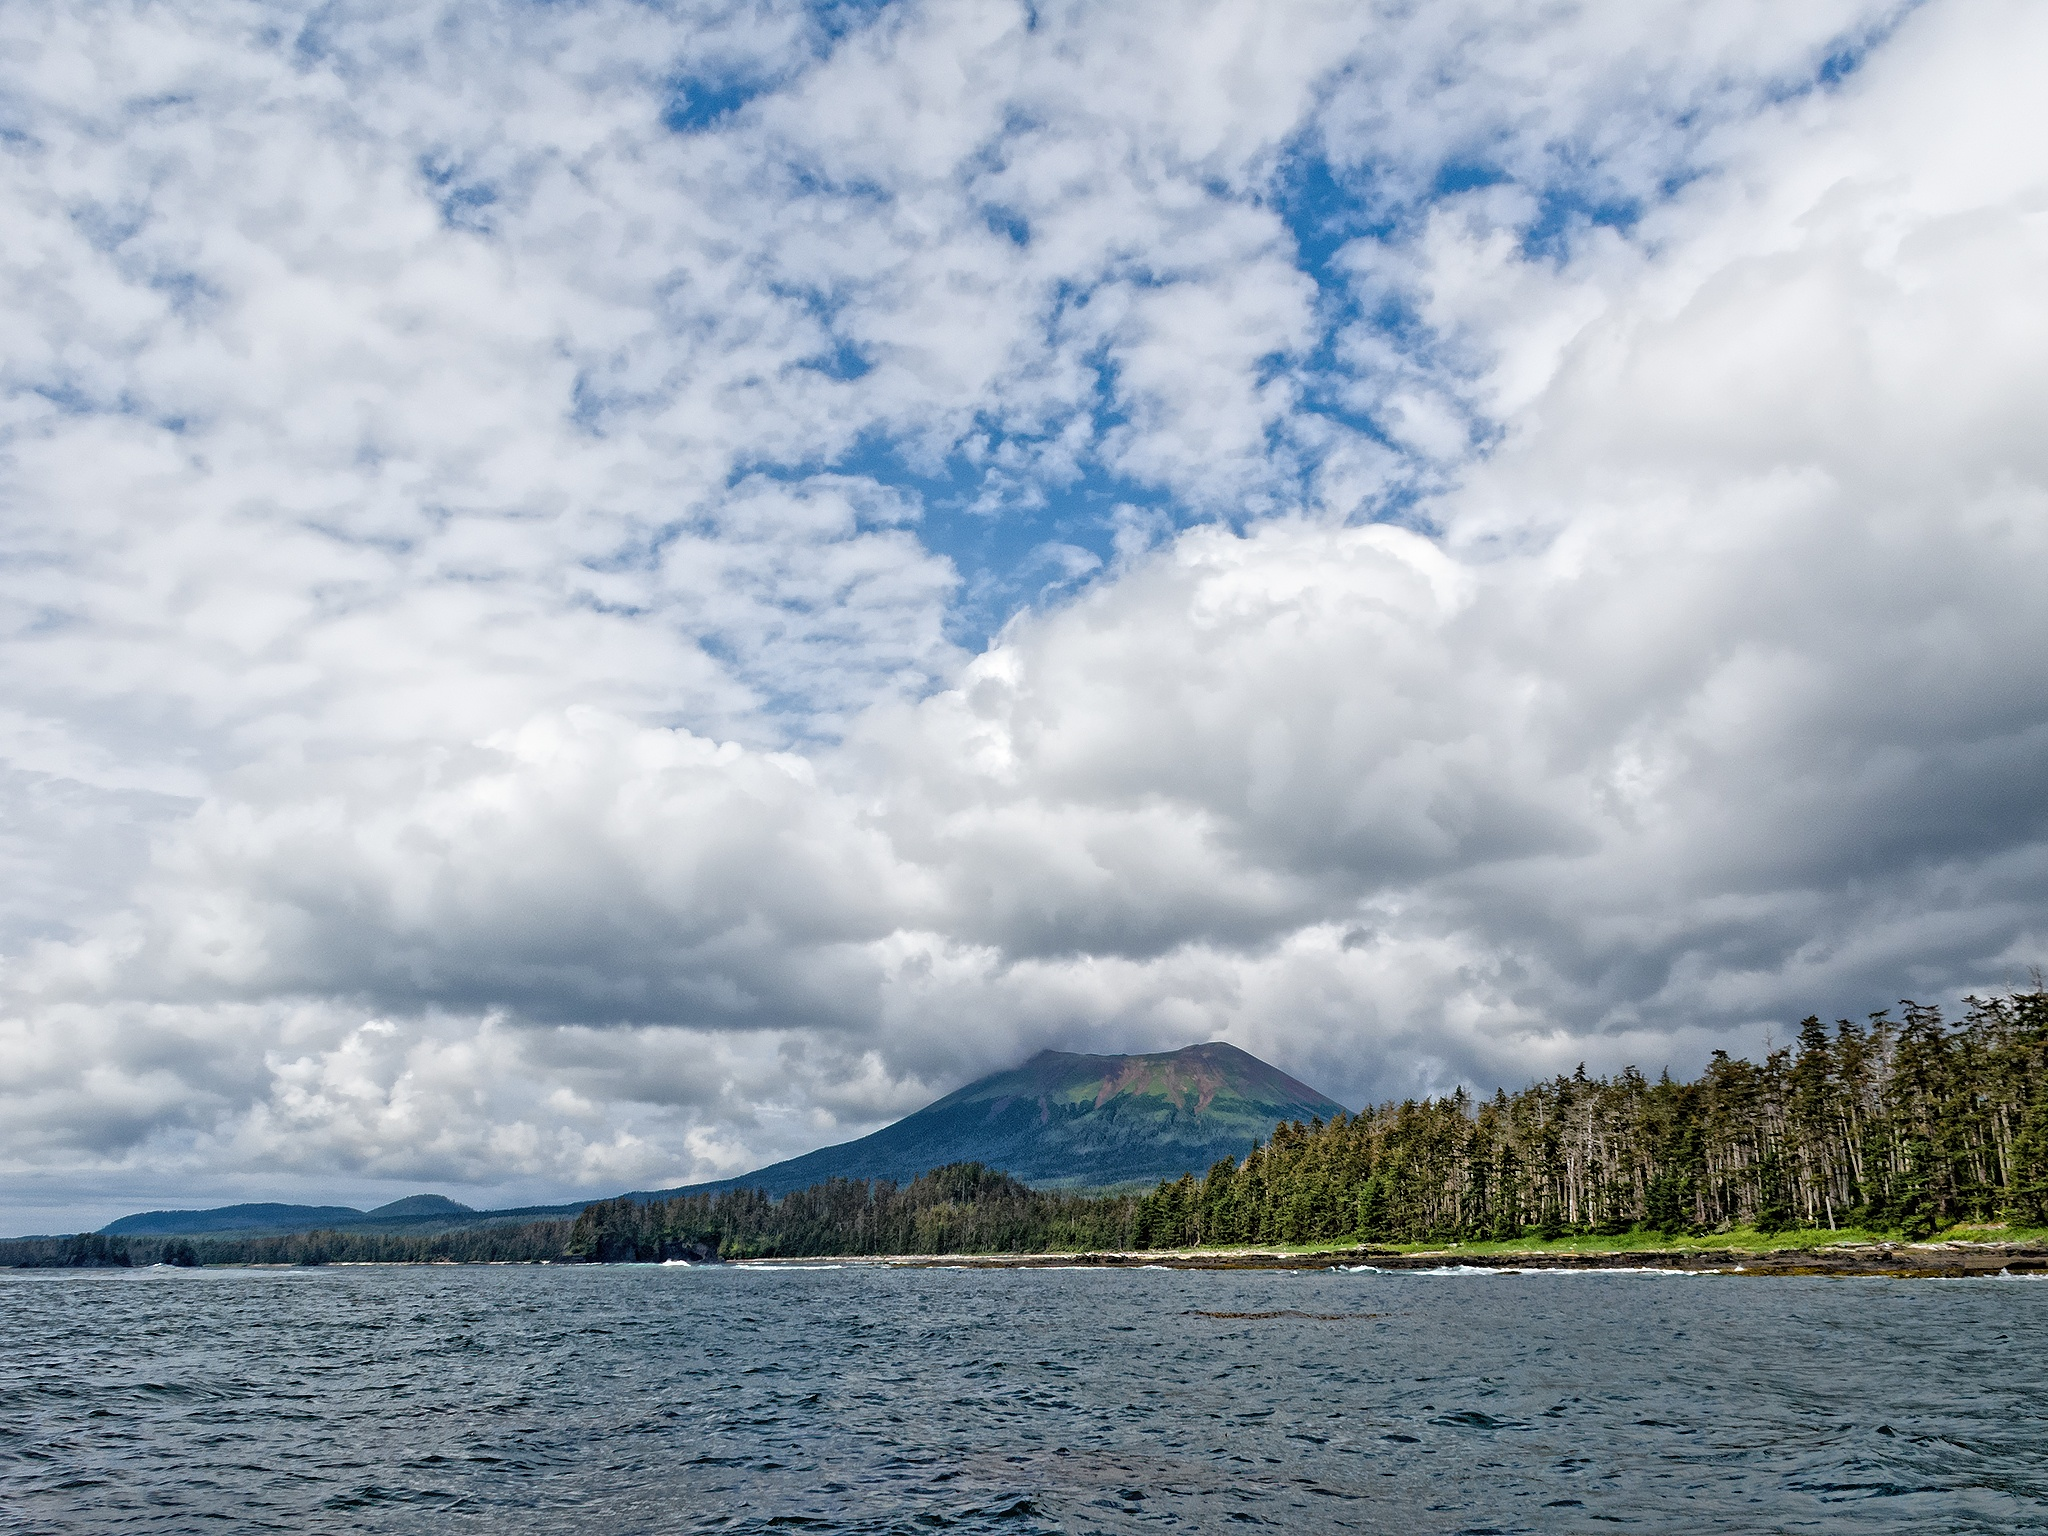 Sitka Cloudscape by Herbert Stachelberger